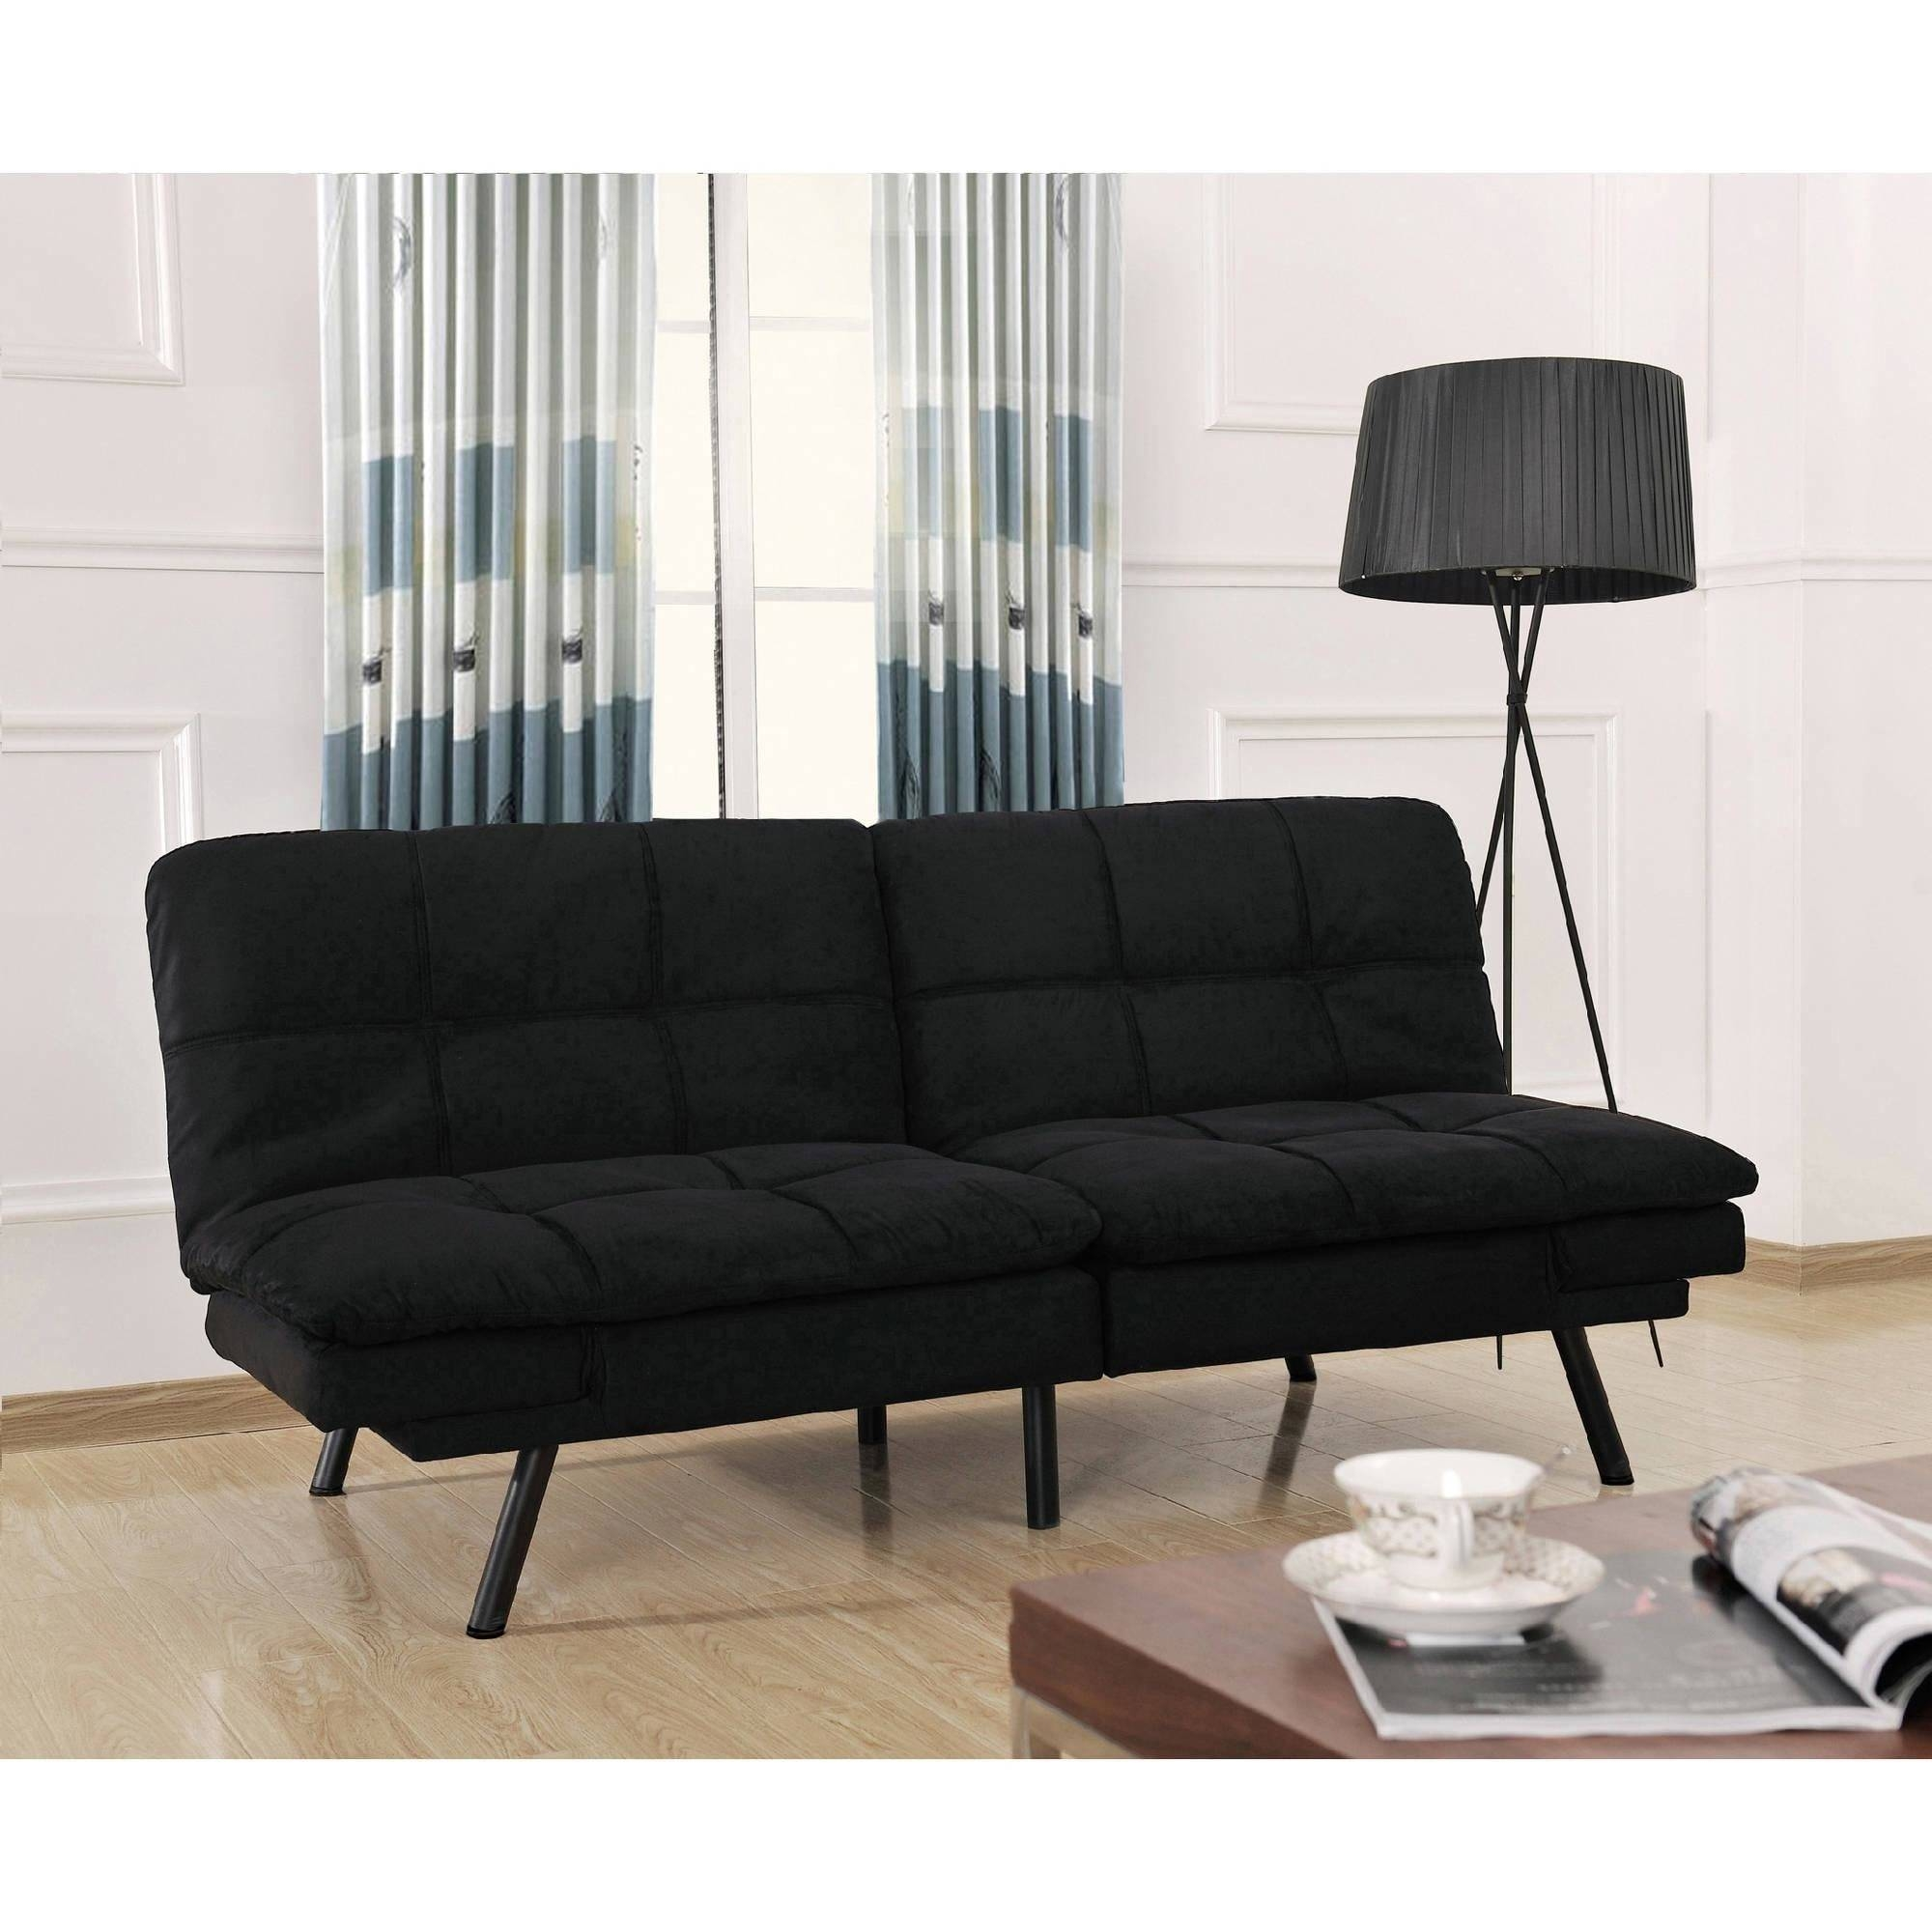 Furniture: Wonderful Walmart Futon Beds With A Simple Folding within Kmart Futon Beds (Image 10 of 15)